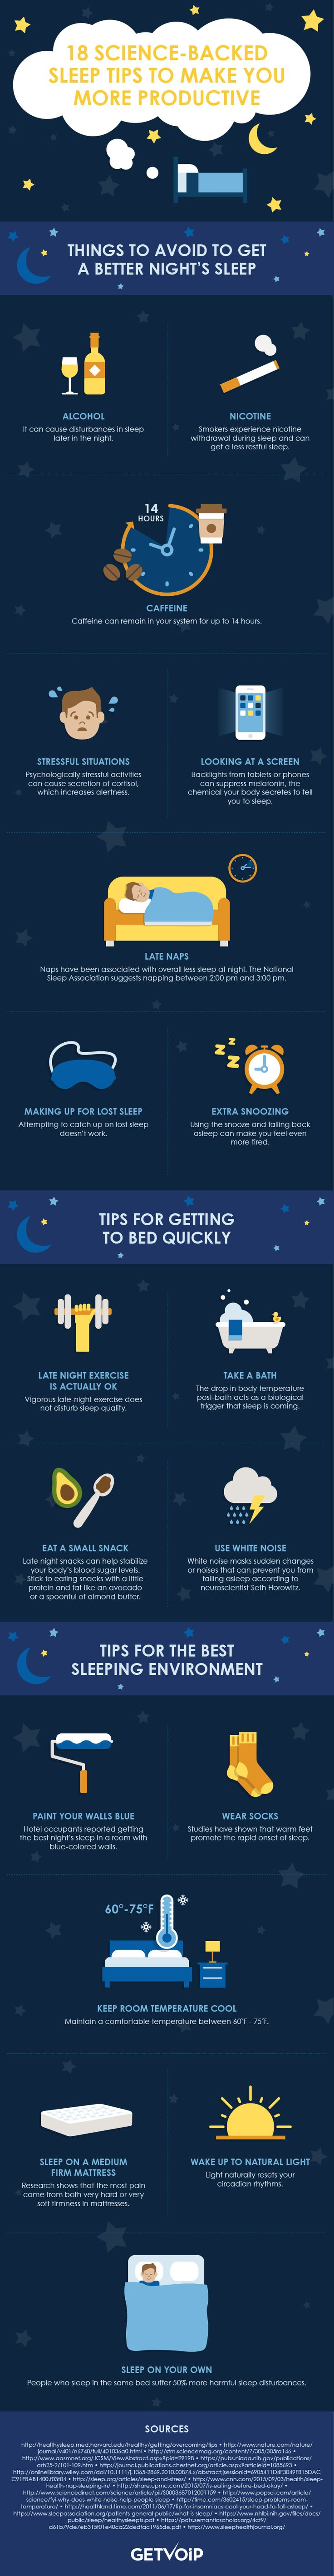 18 Science-Backed Sleep Tips to Make You a More Productive #Entrepreneur #Infographic #Business #Startup